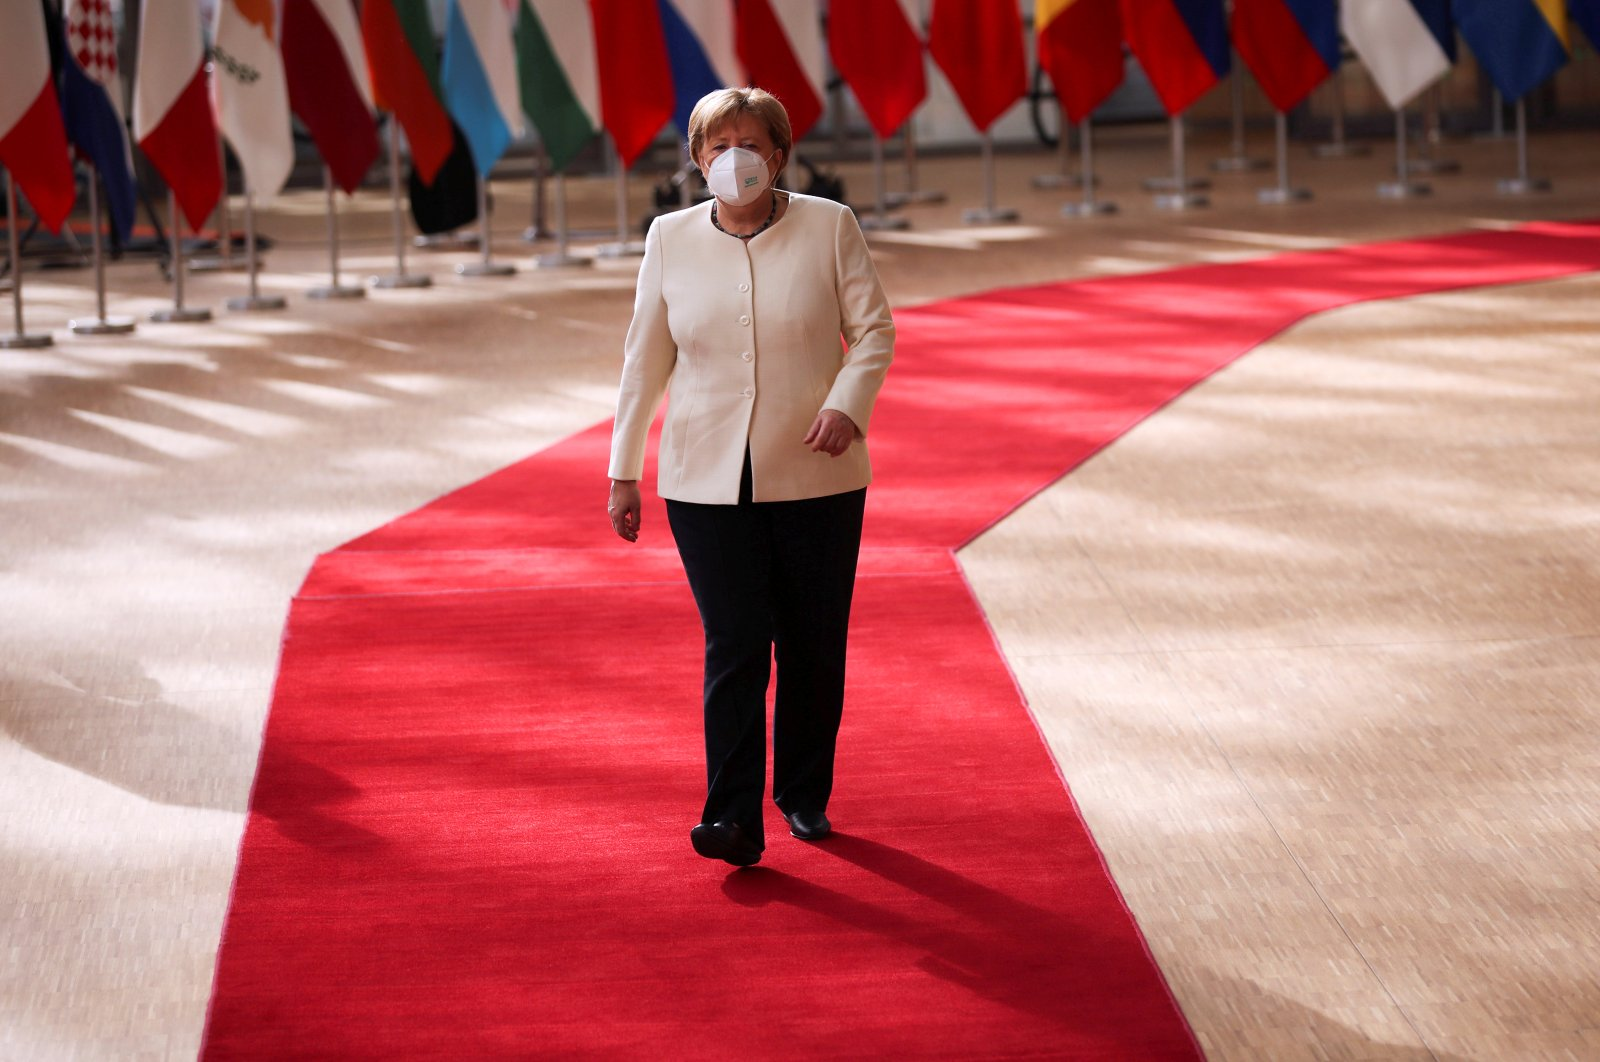 German Chancellor Angela Merkel arrives for the first face-to-face EU summit since the coronavirus outbreak, Brussels, Belgium, July 19, 2020. (Reuters Photo)